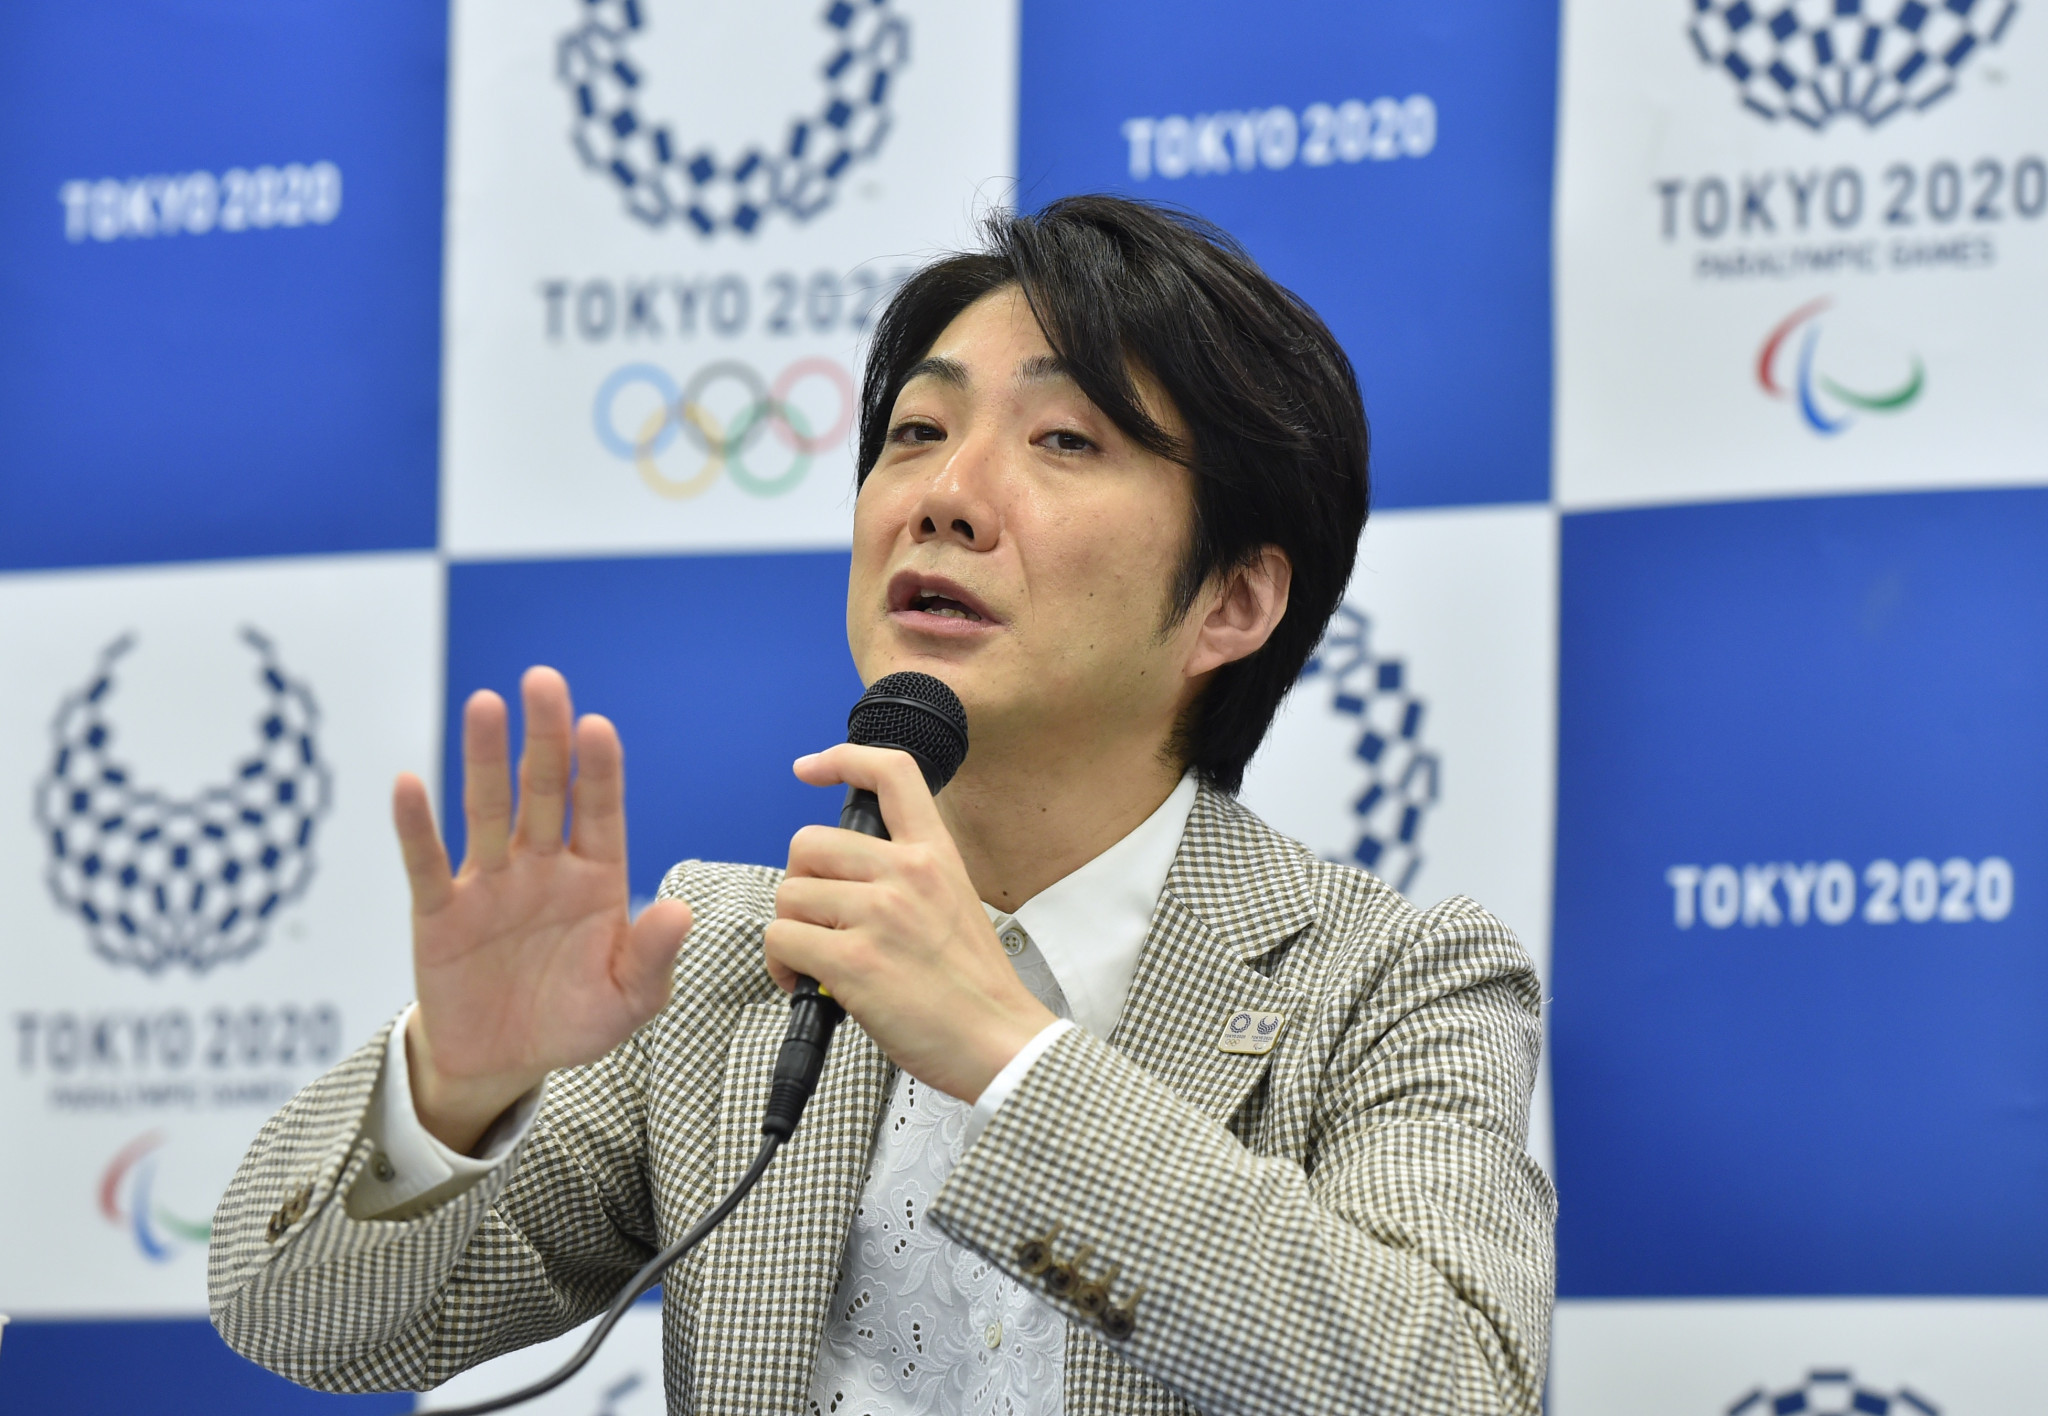 Former chief executive creative director Nomura Mansai will now be an advisor for Tokyo 2020 ©Getty Images